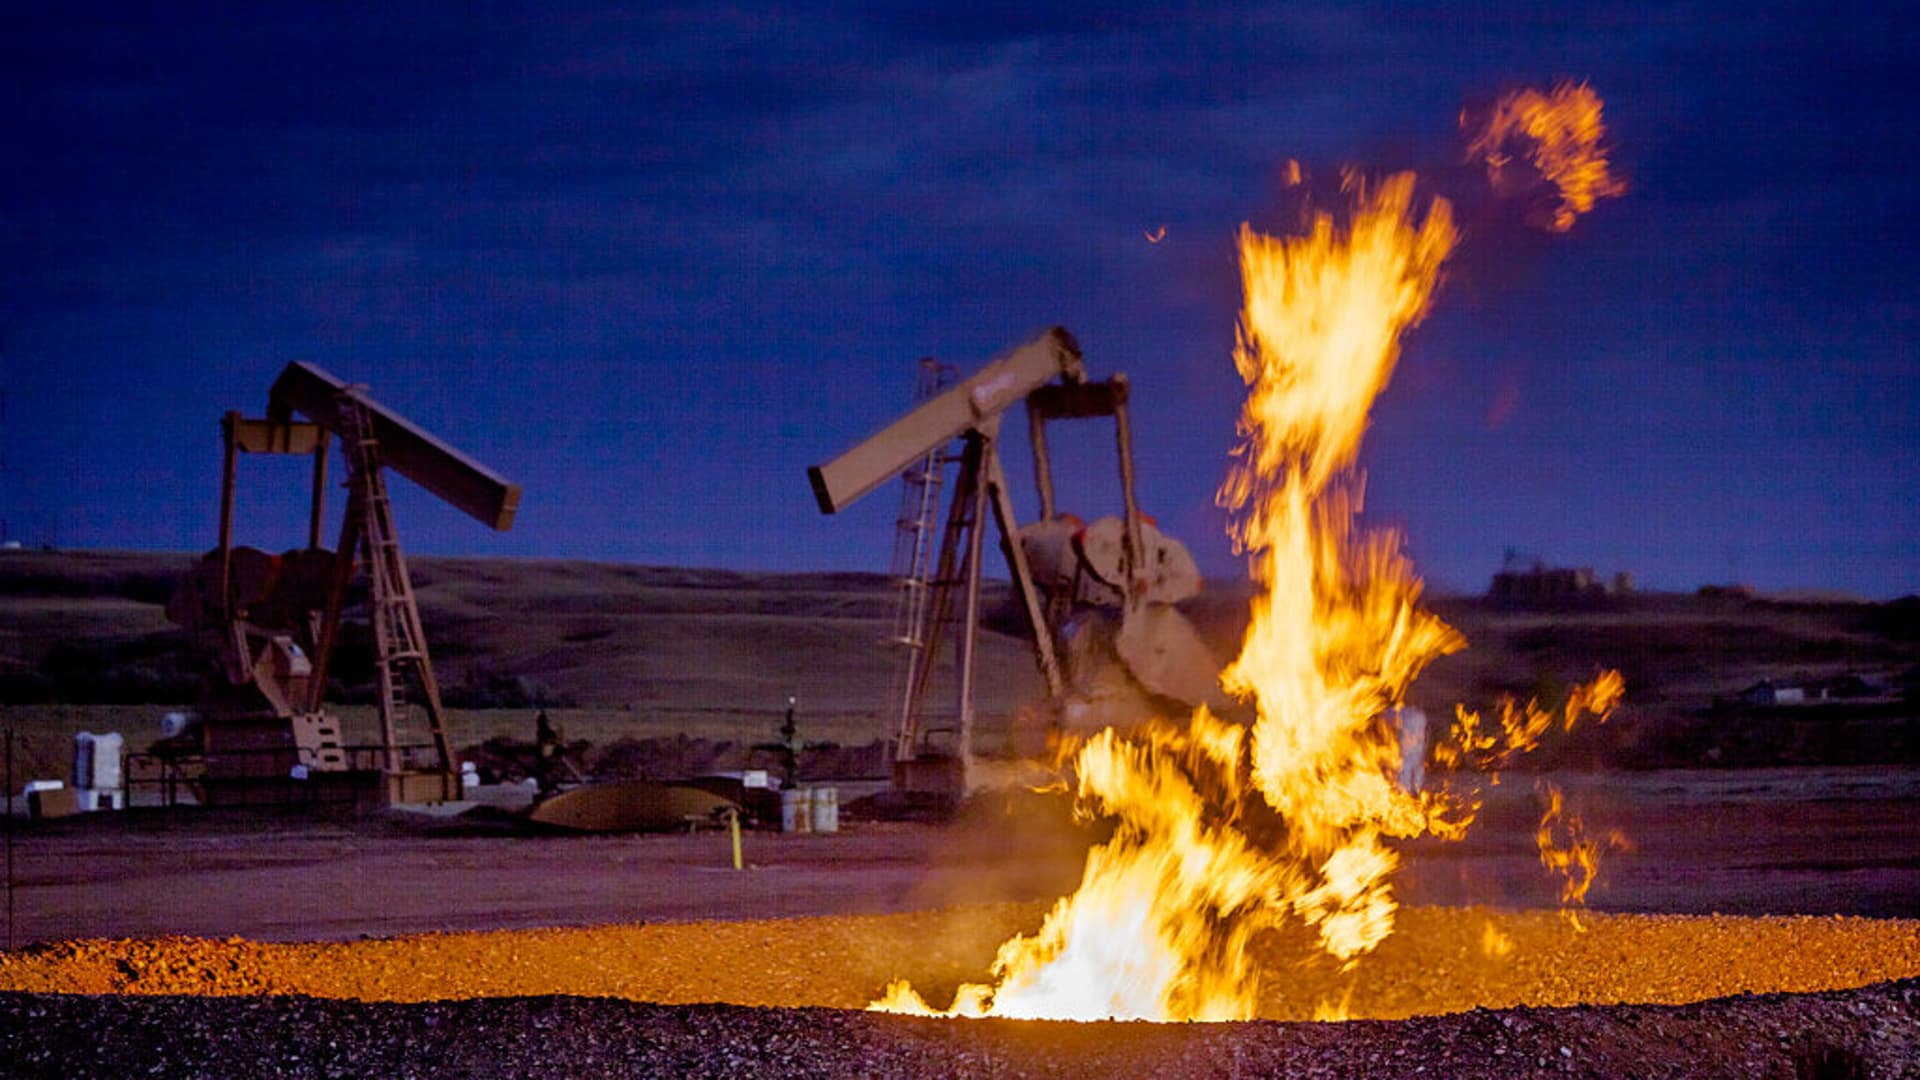 Flames from a flaring pit near a well in the Bakken Oil Field. The primary component of natural gas is methane, which is odorless when it comes directly out of the gas well. In addition to methane, natural gas typically contains other hydrocarbons such as ethane, propane, butane, and pentanes.